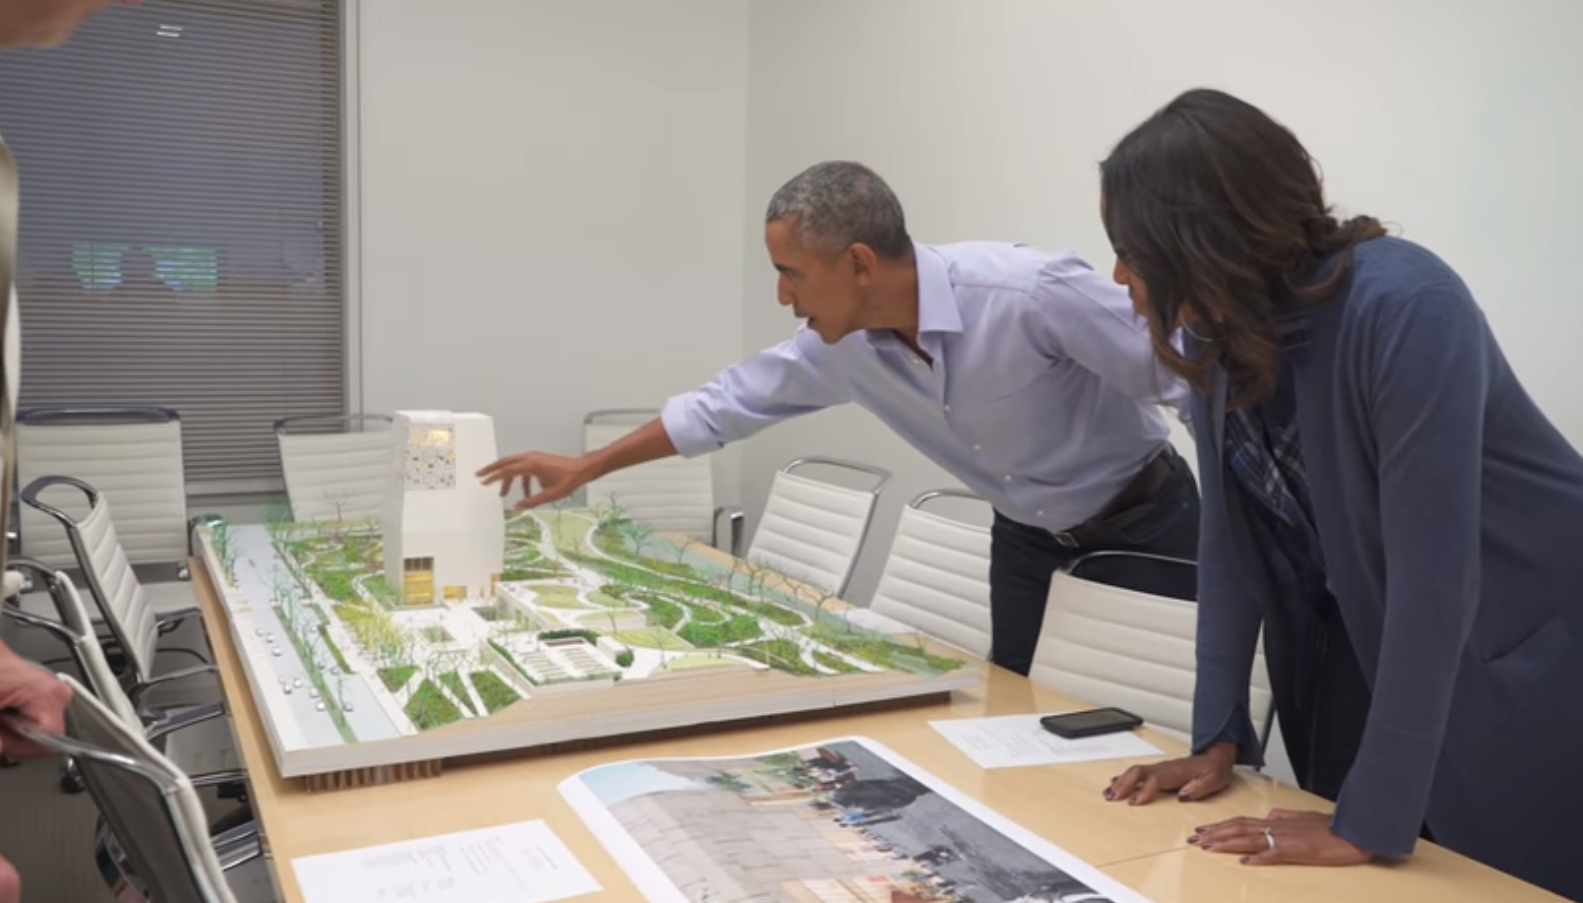 Obama makes surprise visit to Chicago, speaks on presidential center